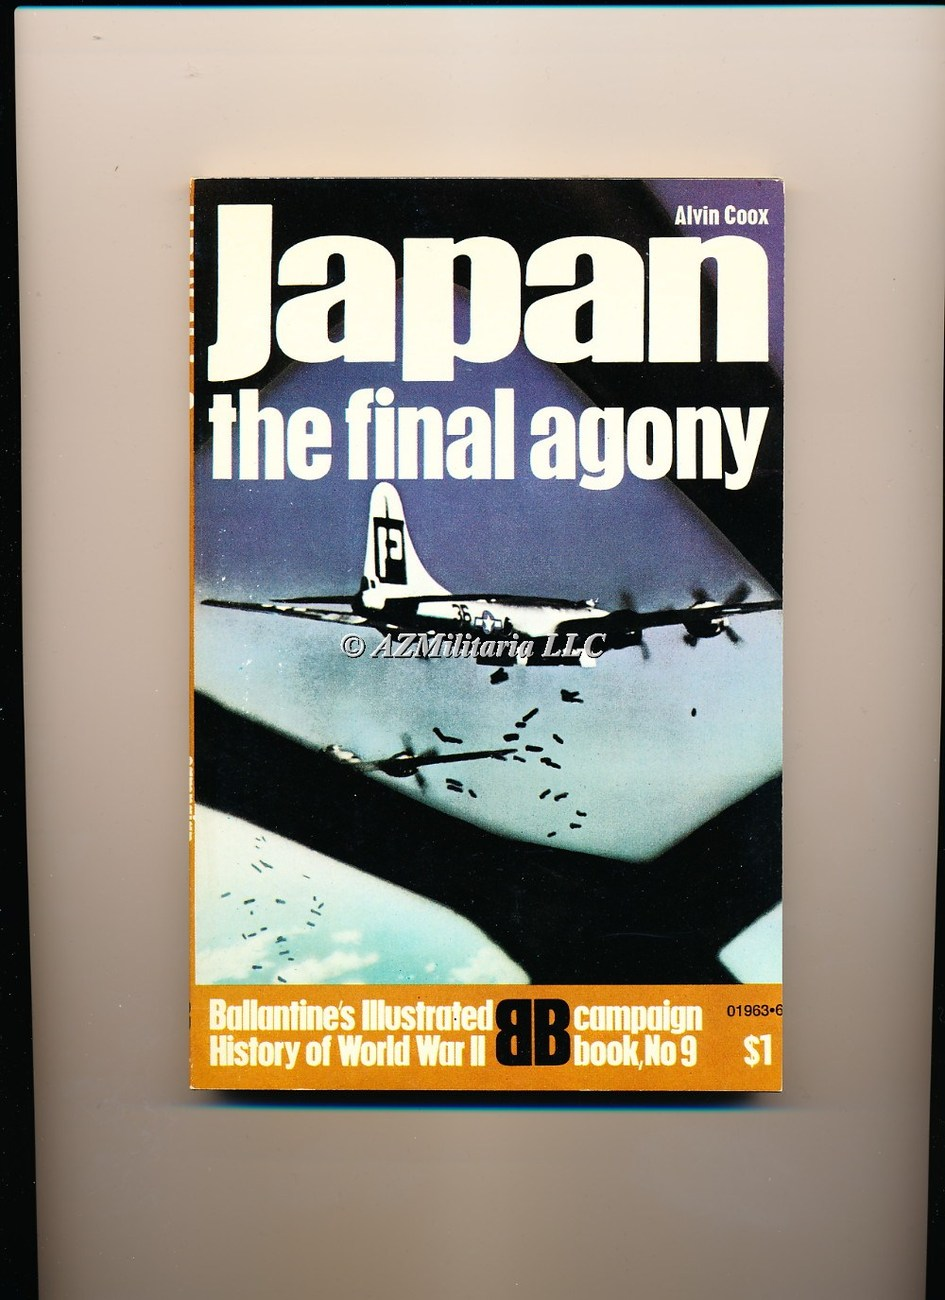 Japan The Final Agony (Campaign Book, No 9)